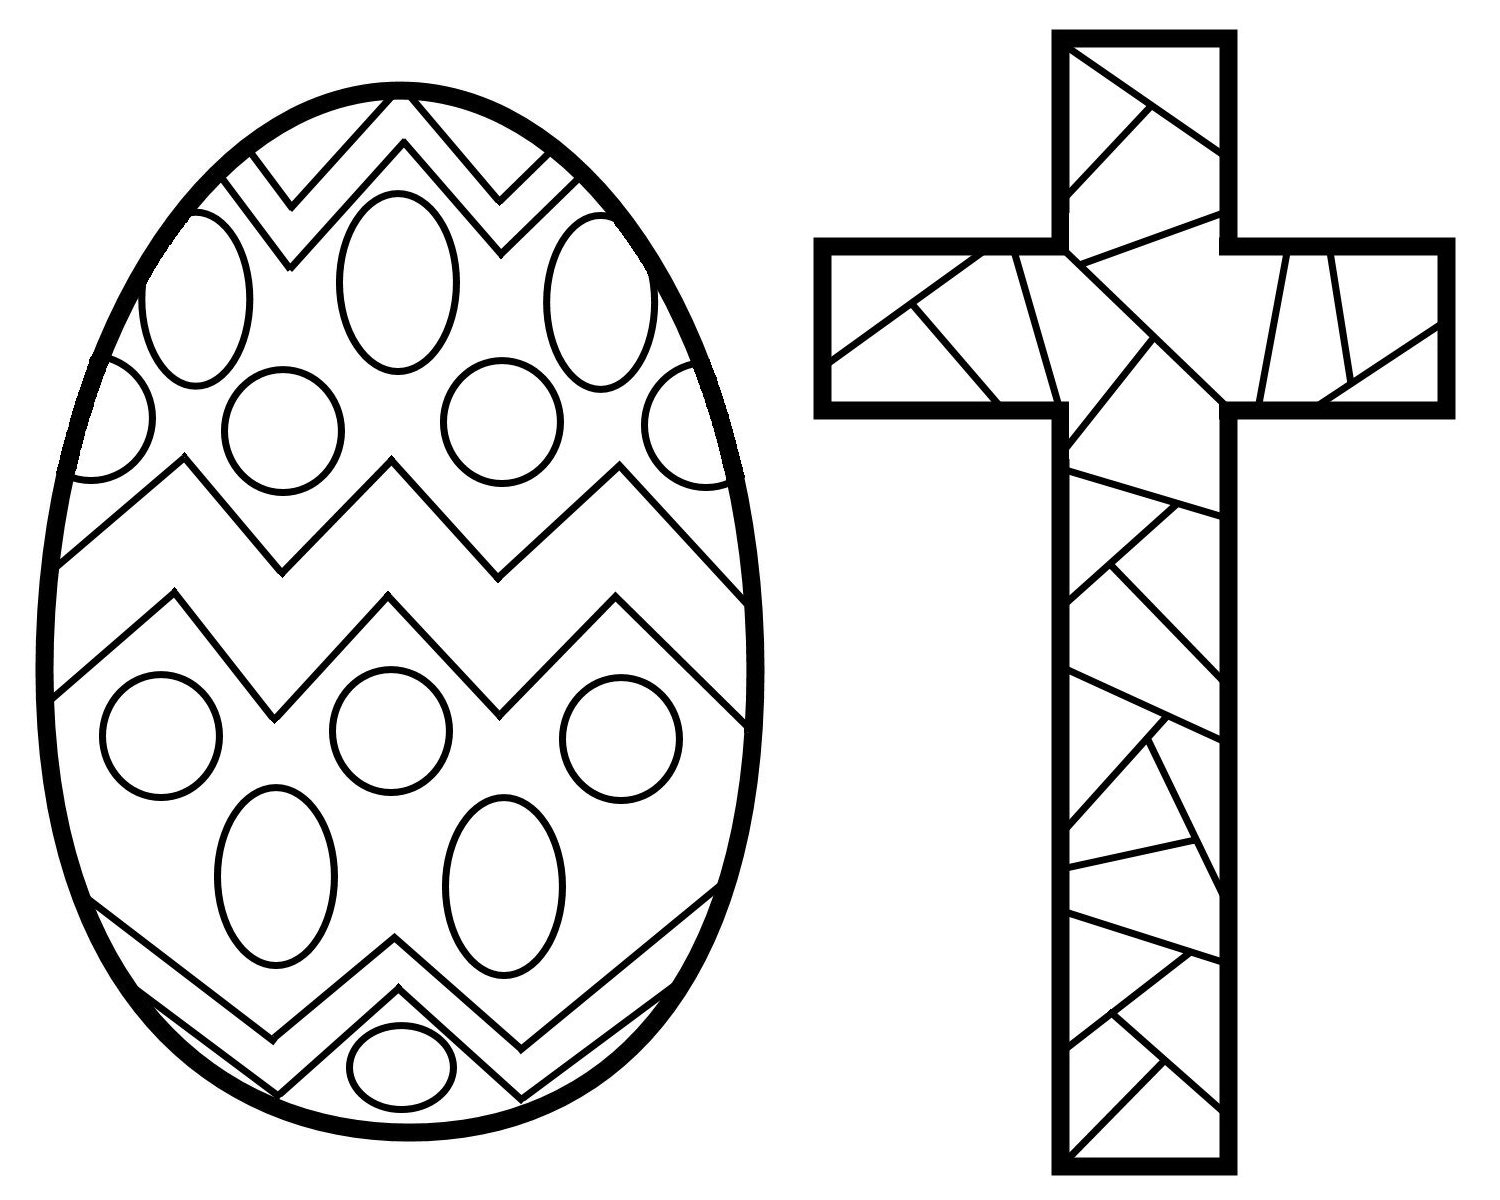 image relating to Easter Egg Coloring Pages Free Printable titled Easter Egg Coloring Webpages Absolutely free Printable at